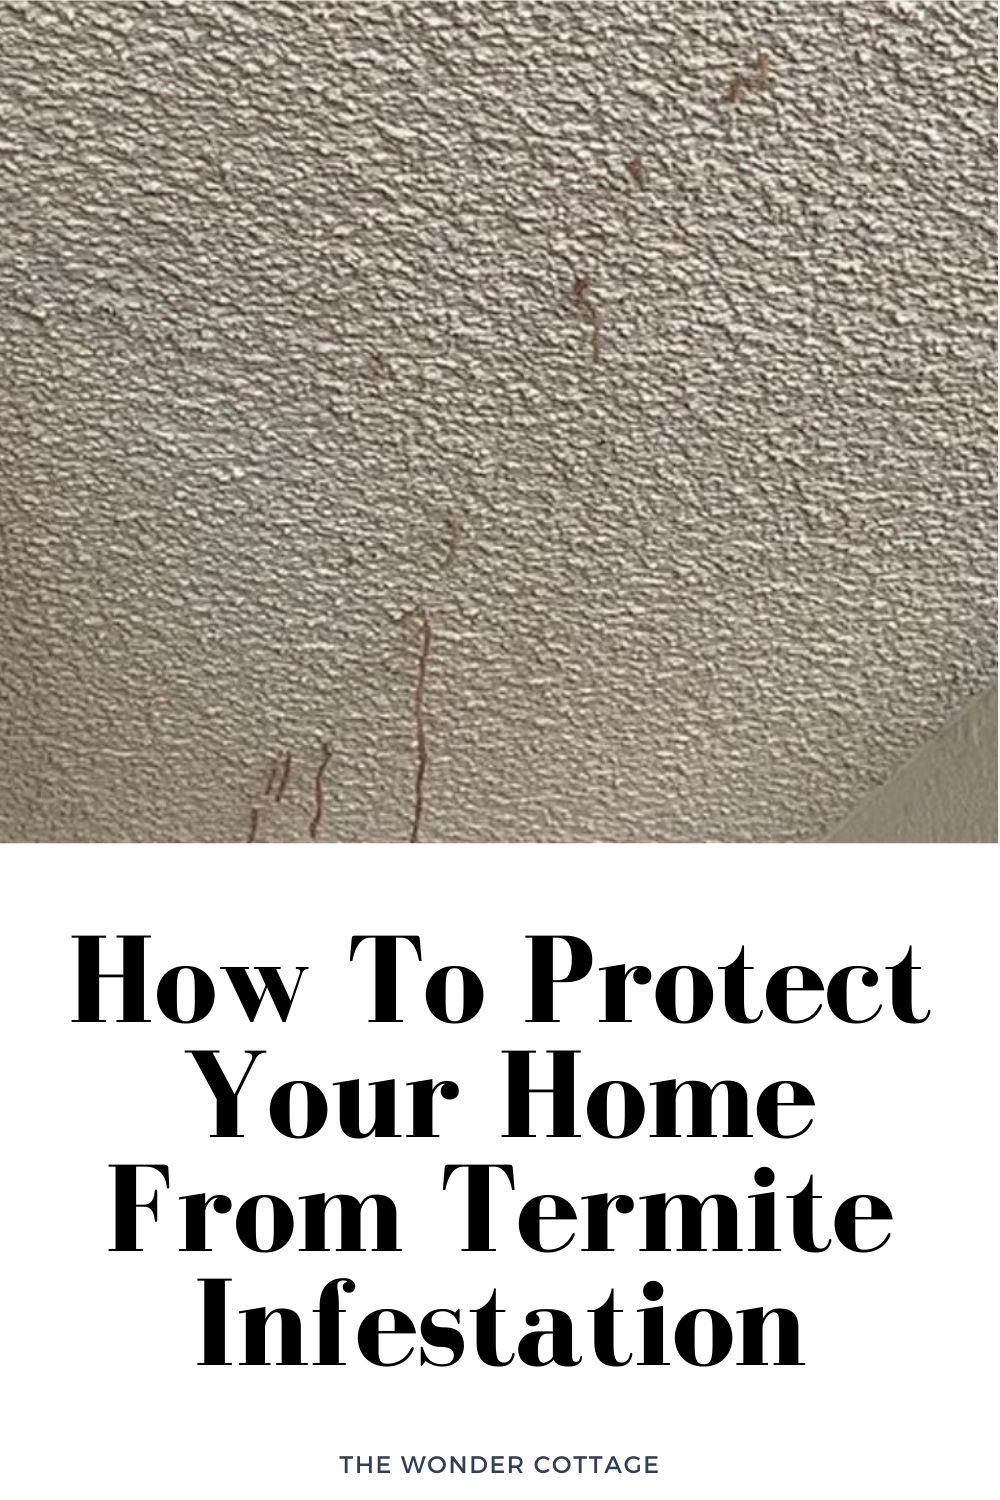 how to protect your home from termite infestation